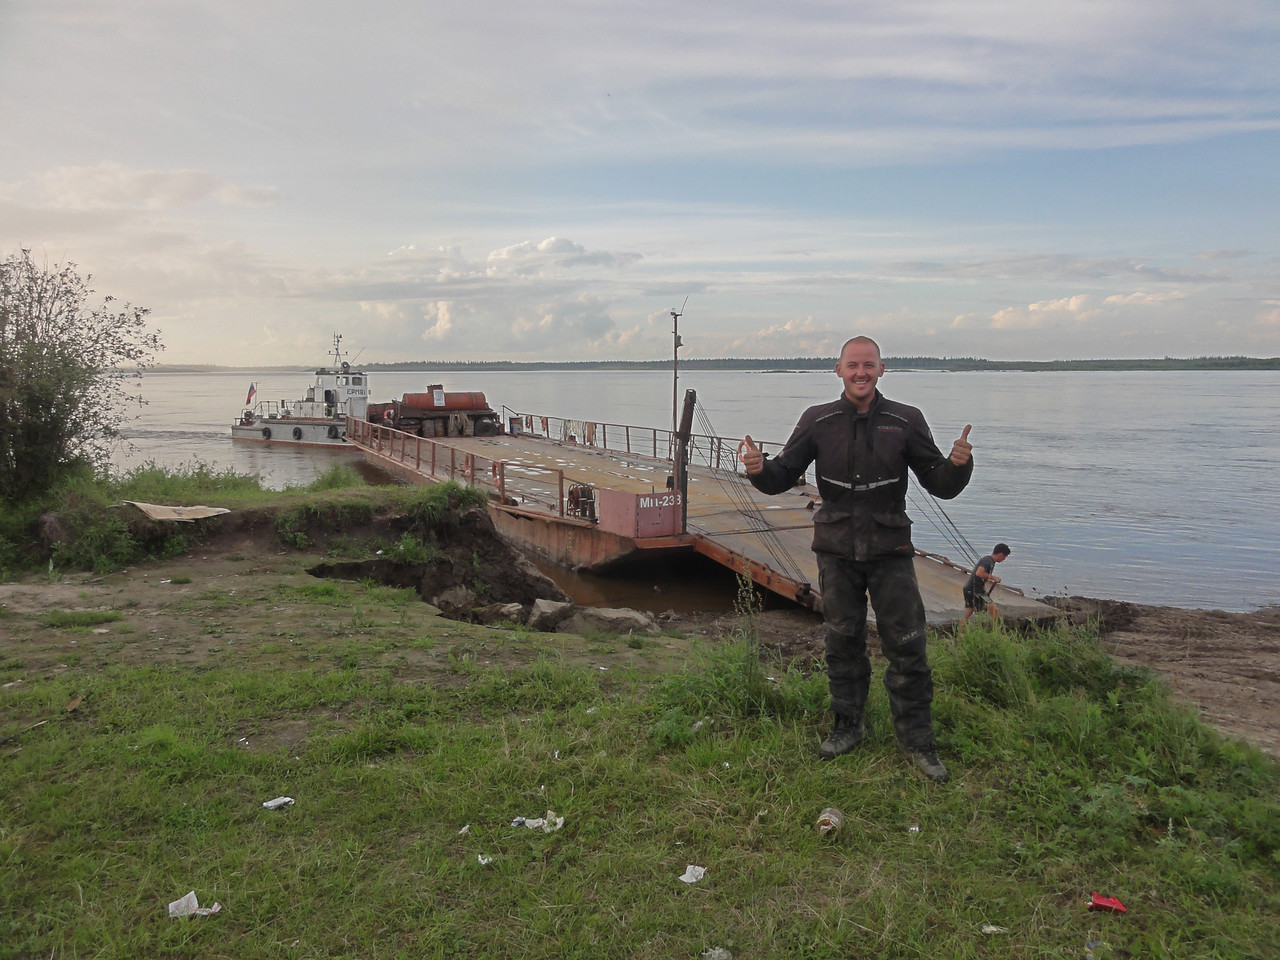 After three days of waiting a ferry finally arrived to carry us across the Aldan River